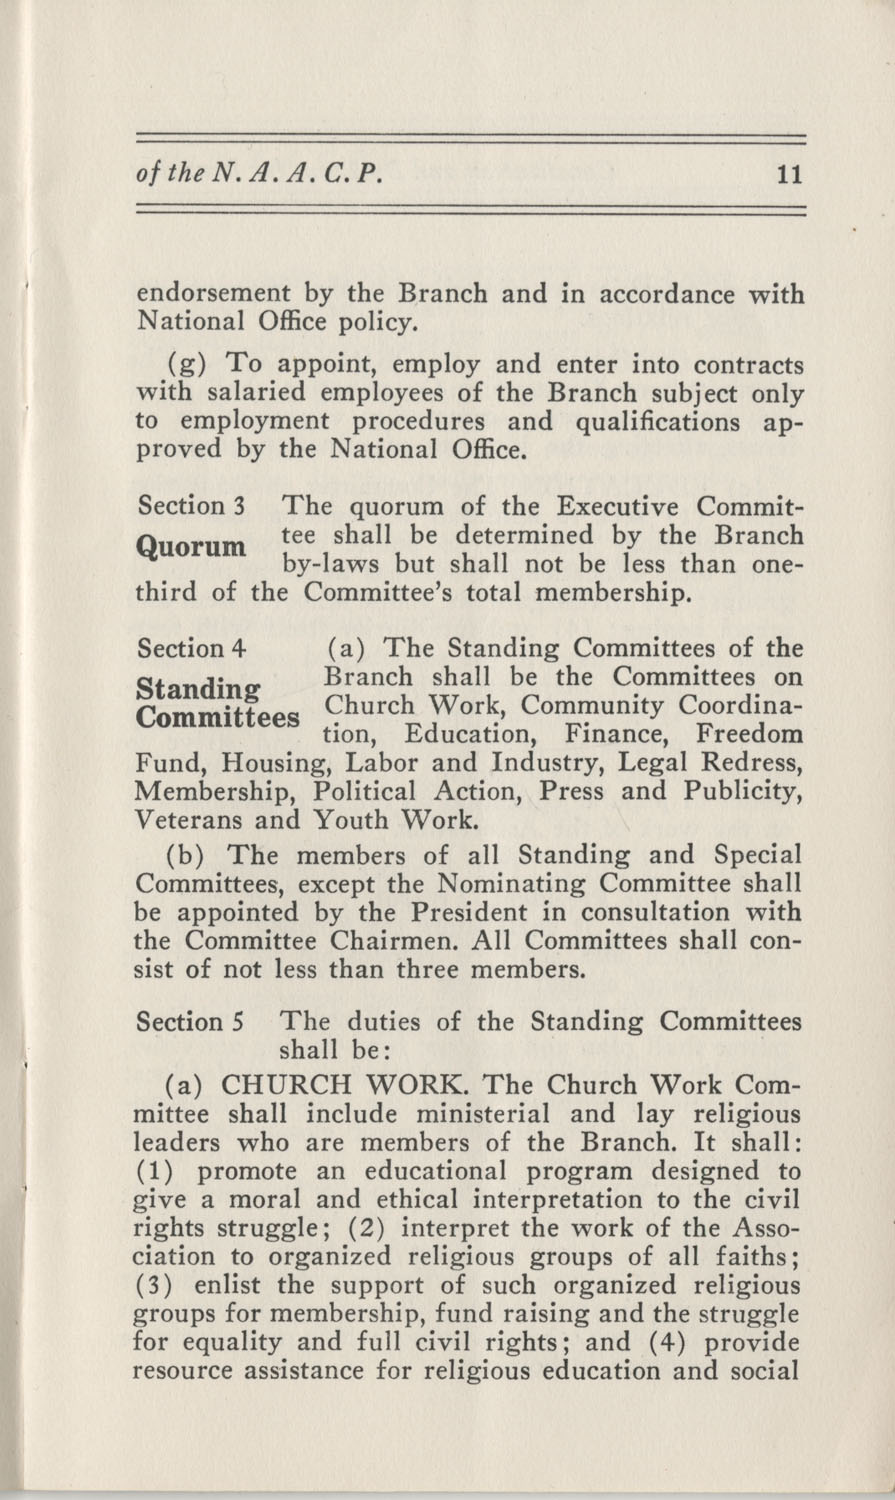 Constitutions and By-Laws, September 1960, Page 11